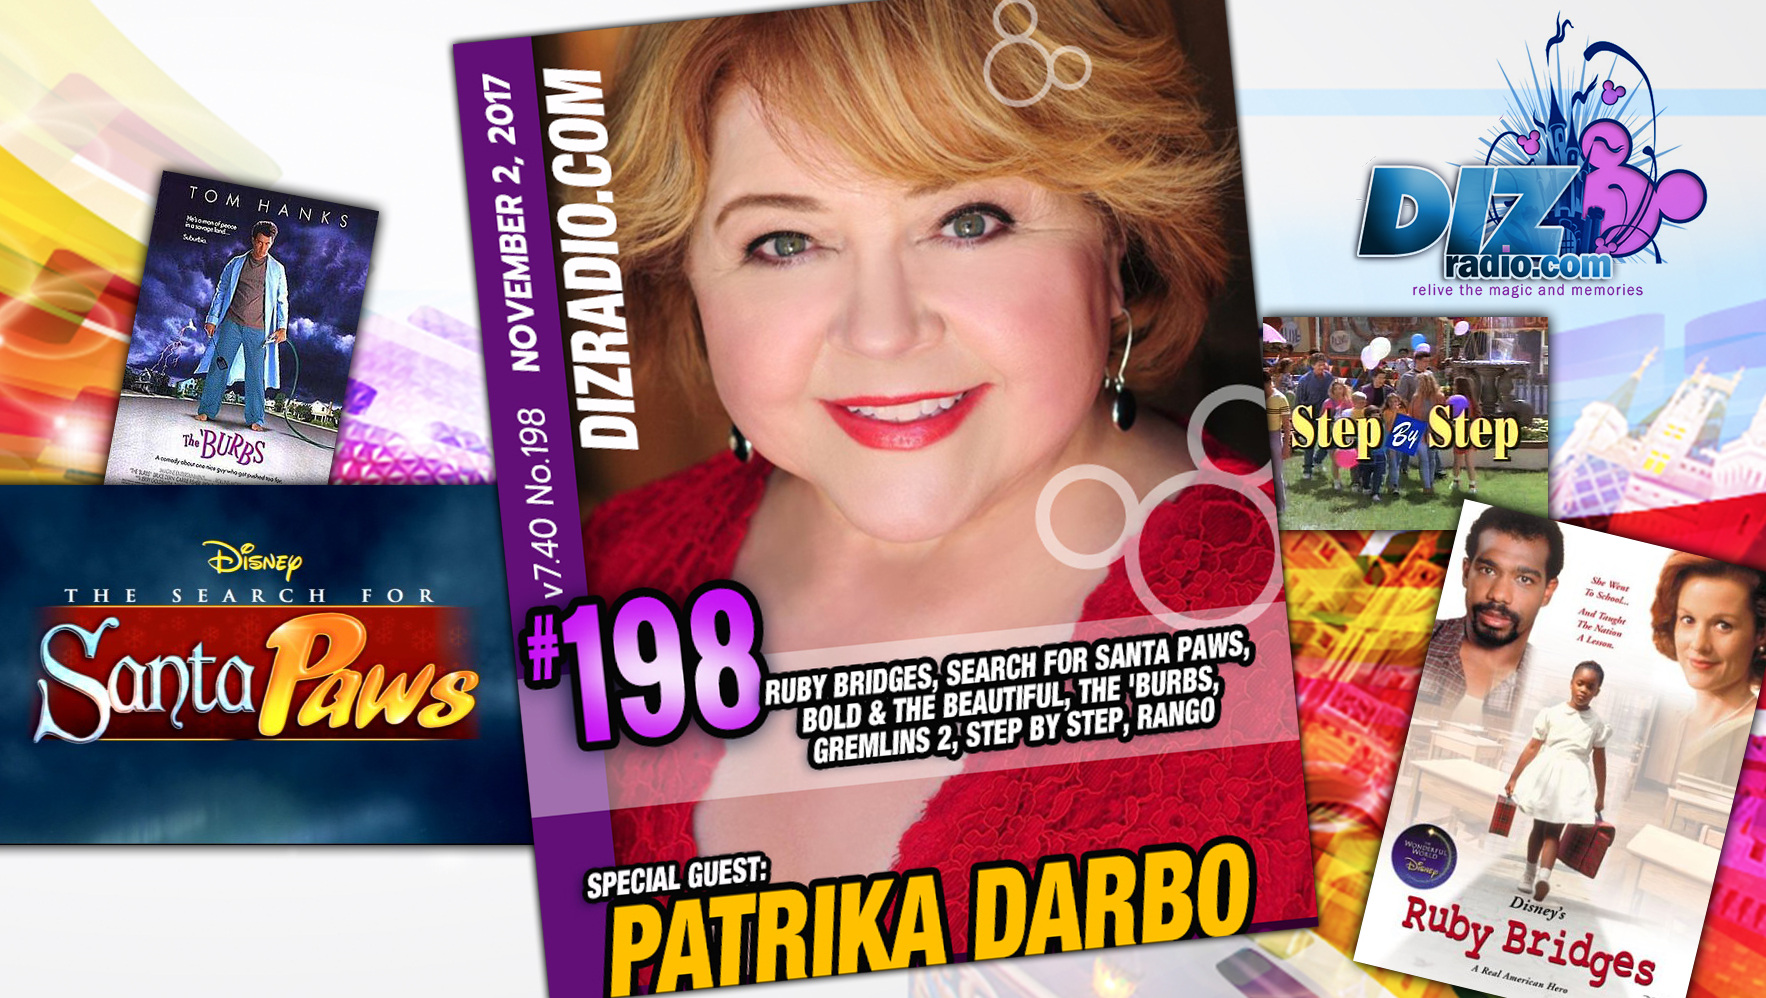 DisneyBlu's DizRadio Disney on Demand Podcast Show #198 w/ Guest PATRIKA DARBO (Disney's Ruby Bridges, Step By Step, The Search for Santa Paws, The Burbs, Bold and the Beautiful, Spaced Invaders, Gremlins 2 and more)